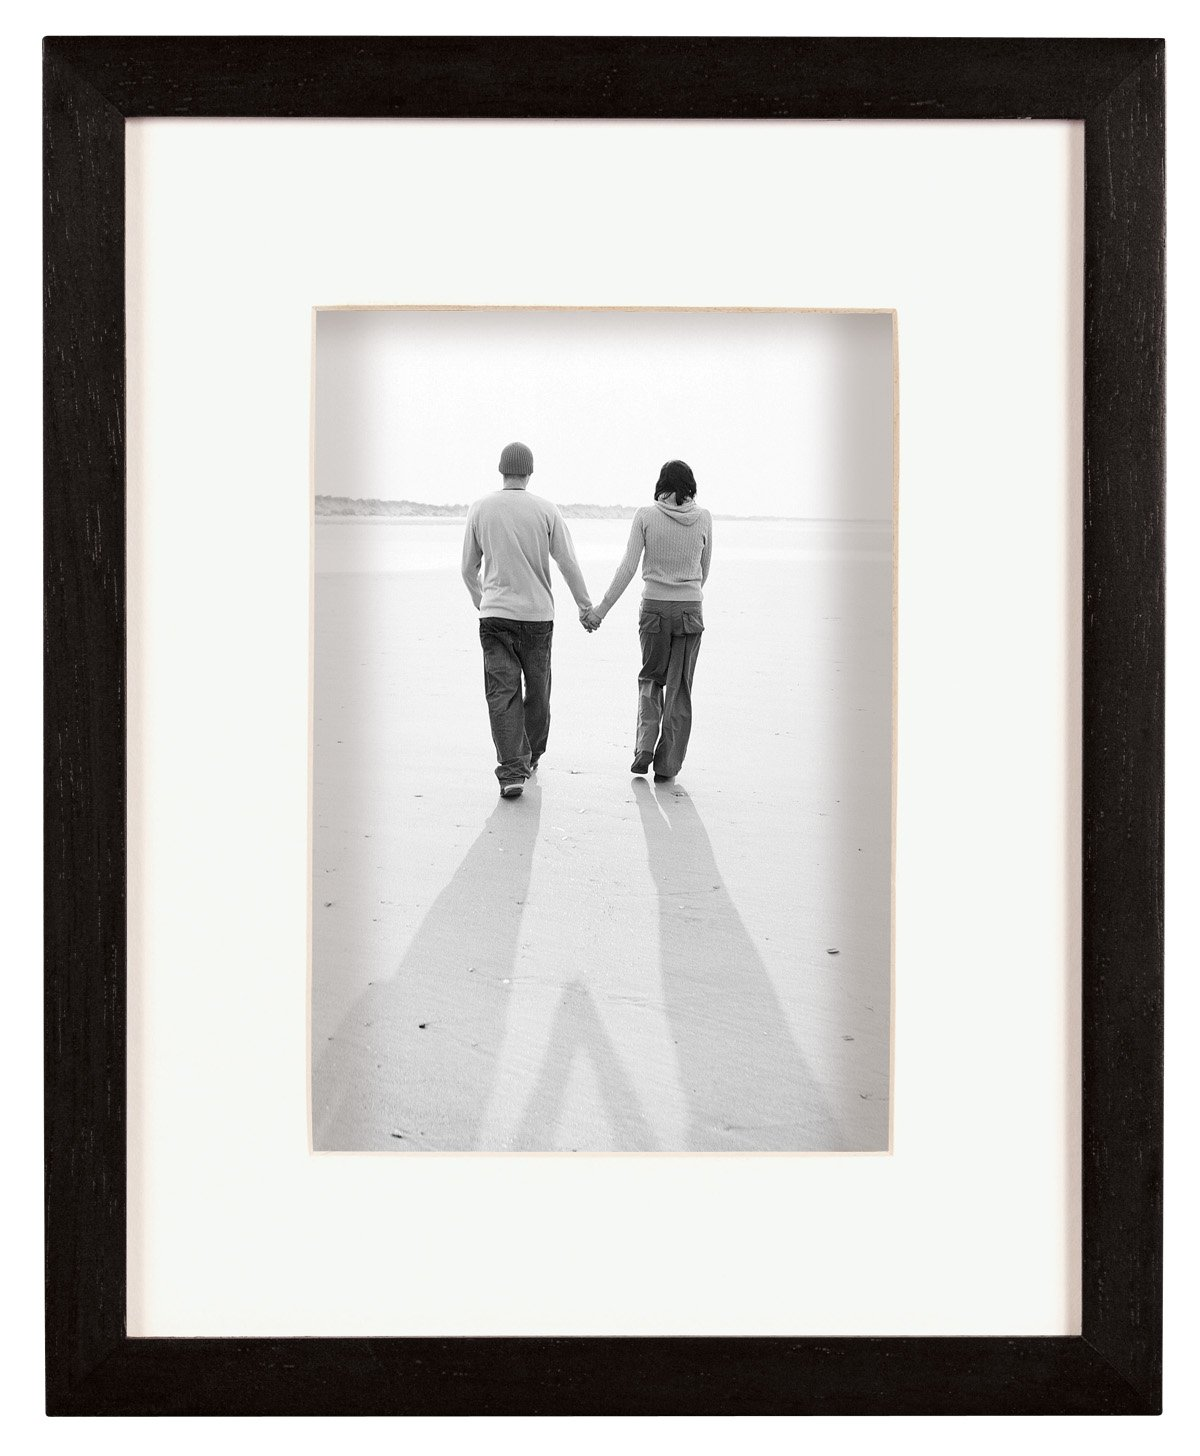 MCS Dakota Wood Shadow Box Series, Wood Picture Frame 16 x 20 - Inch With a 11x14 - Inch Opening Photograph, Black MCS Industries Inc. 52733 FRDSB1620BK